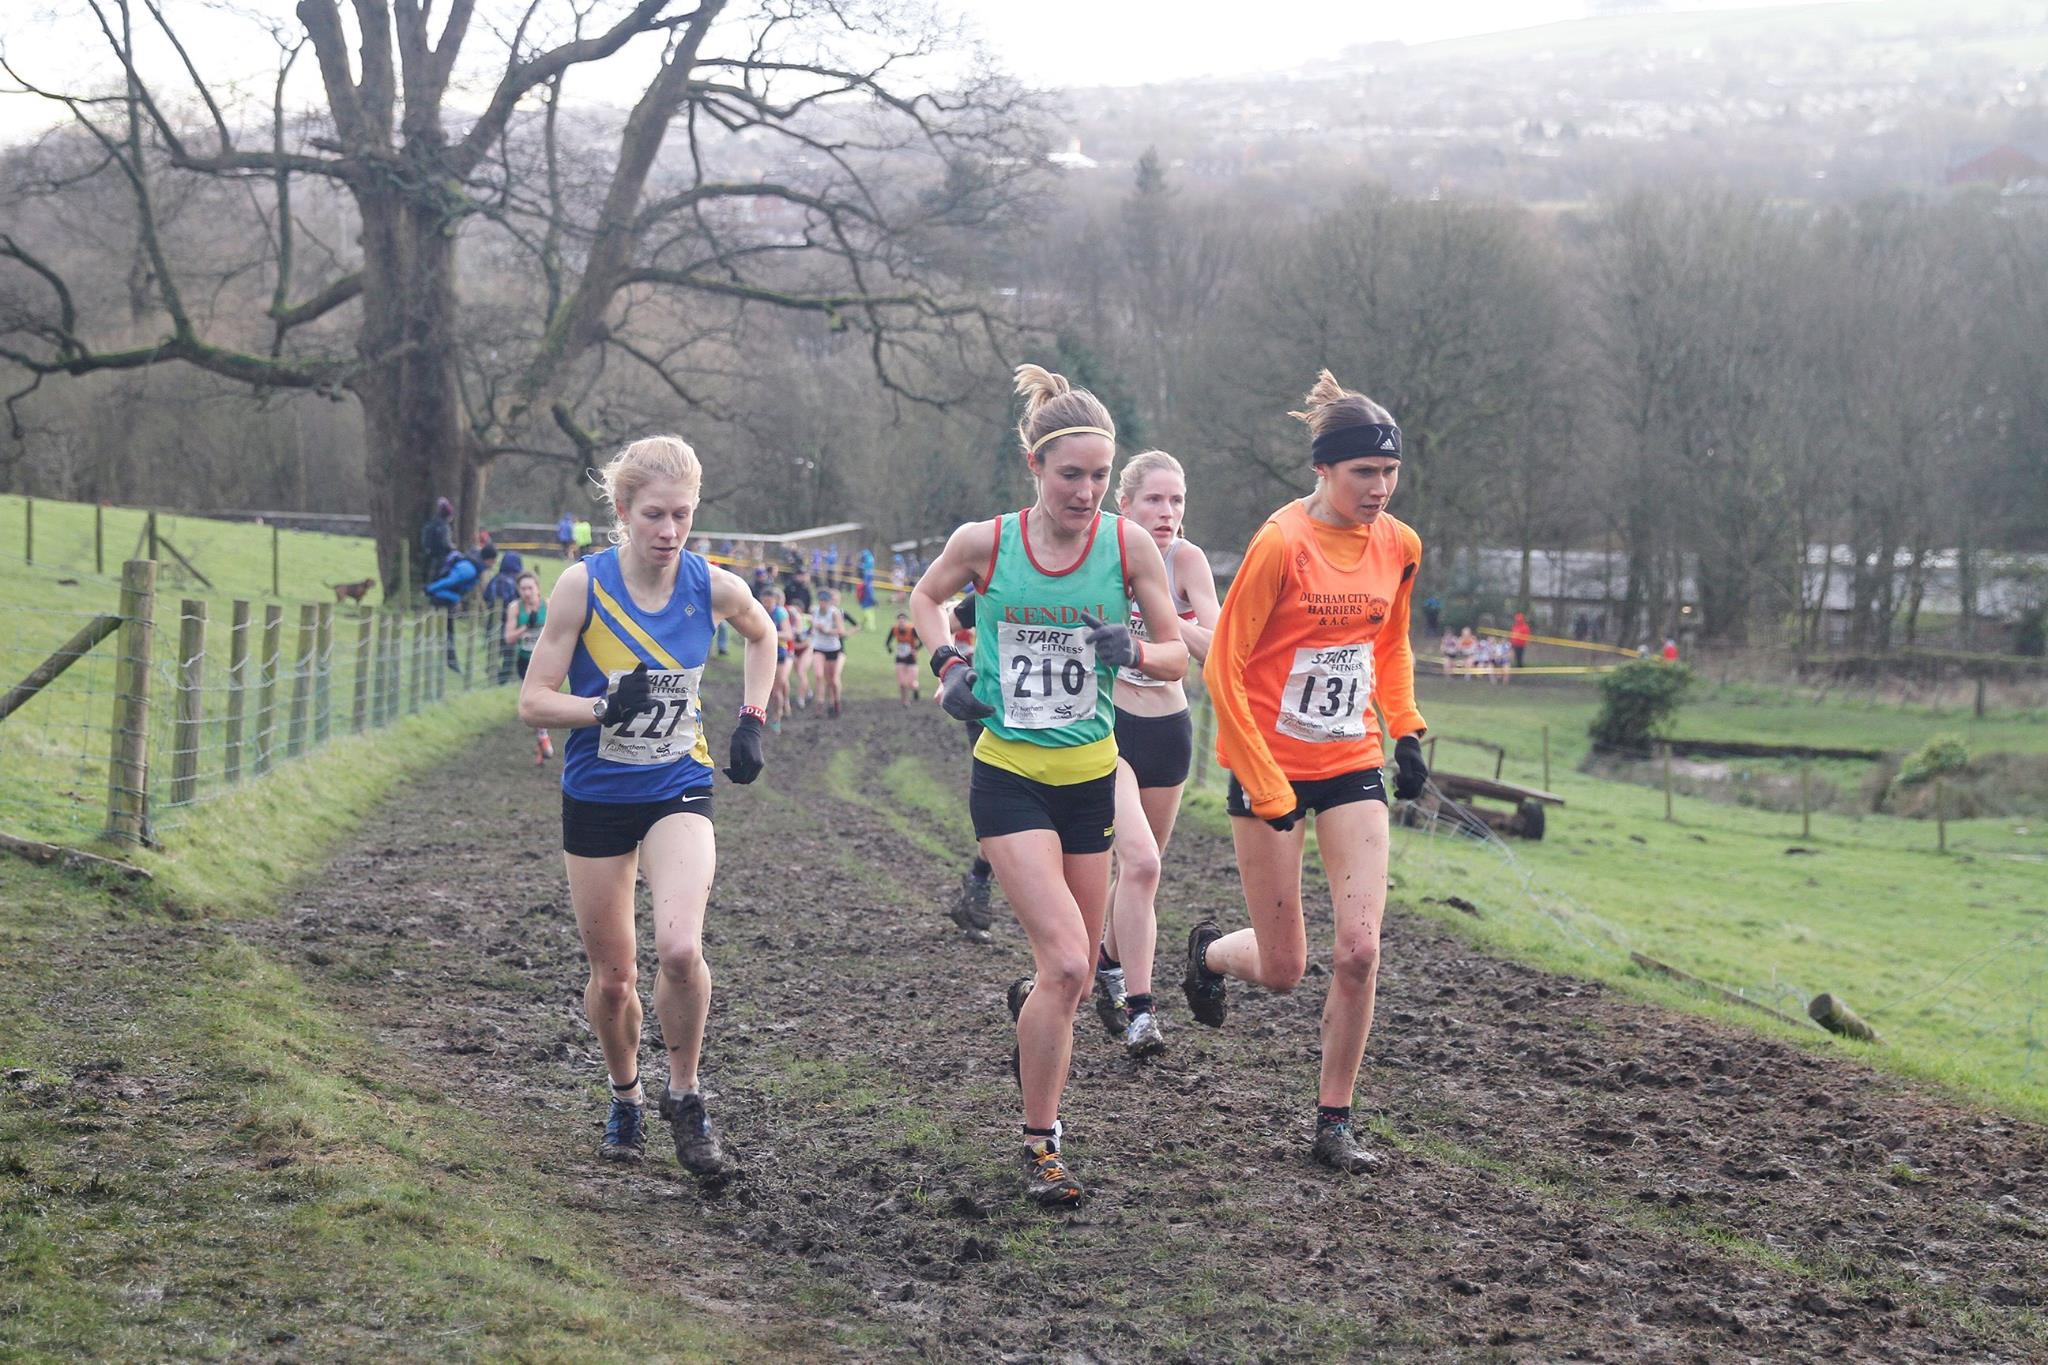 BLOG: What makes cross-country?